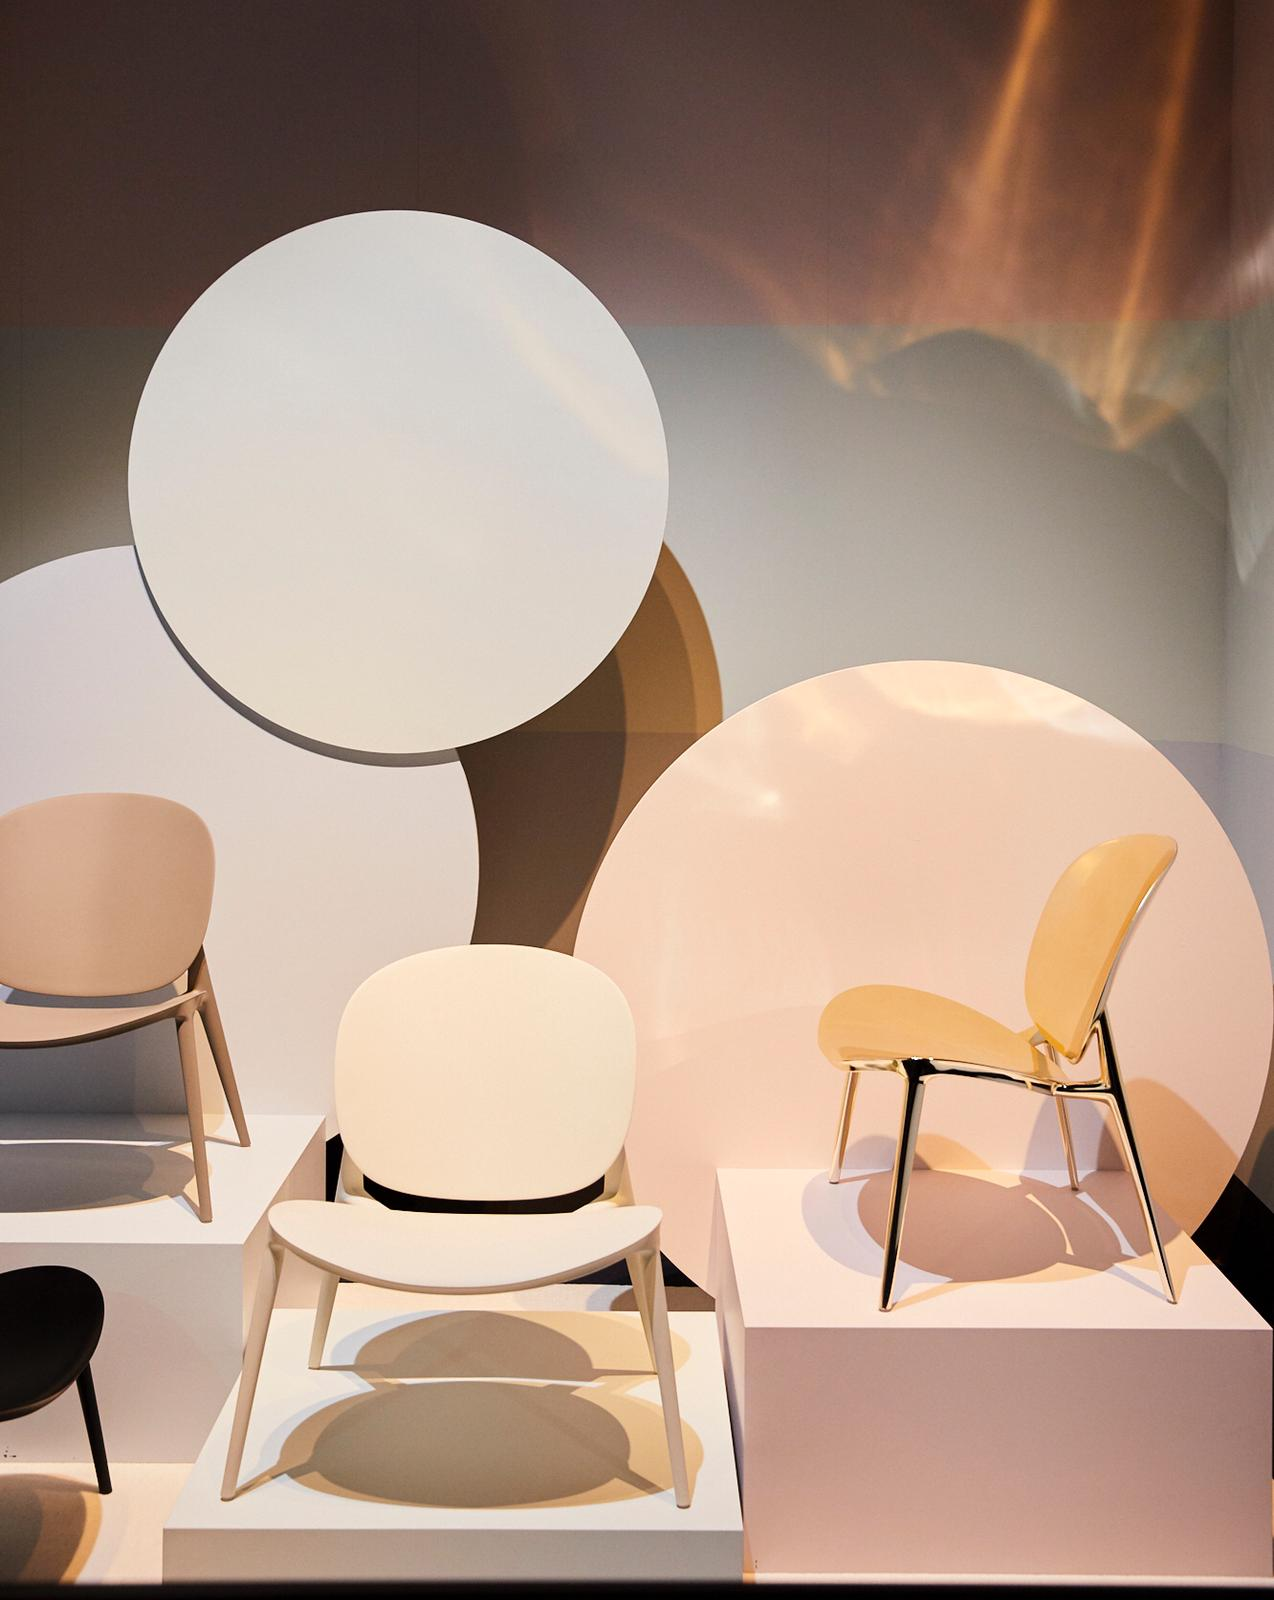 The Be bop chair designed by Ludovica and Roberto Palomba for Kartell.